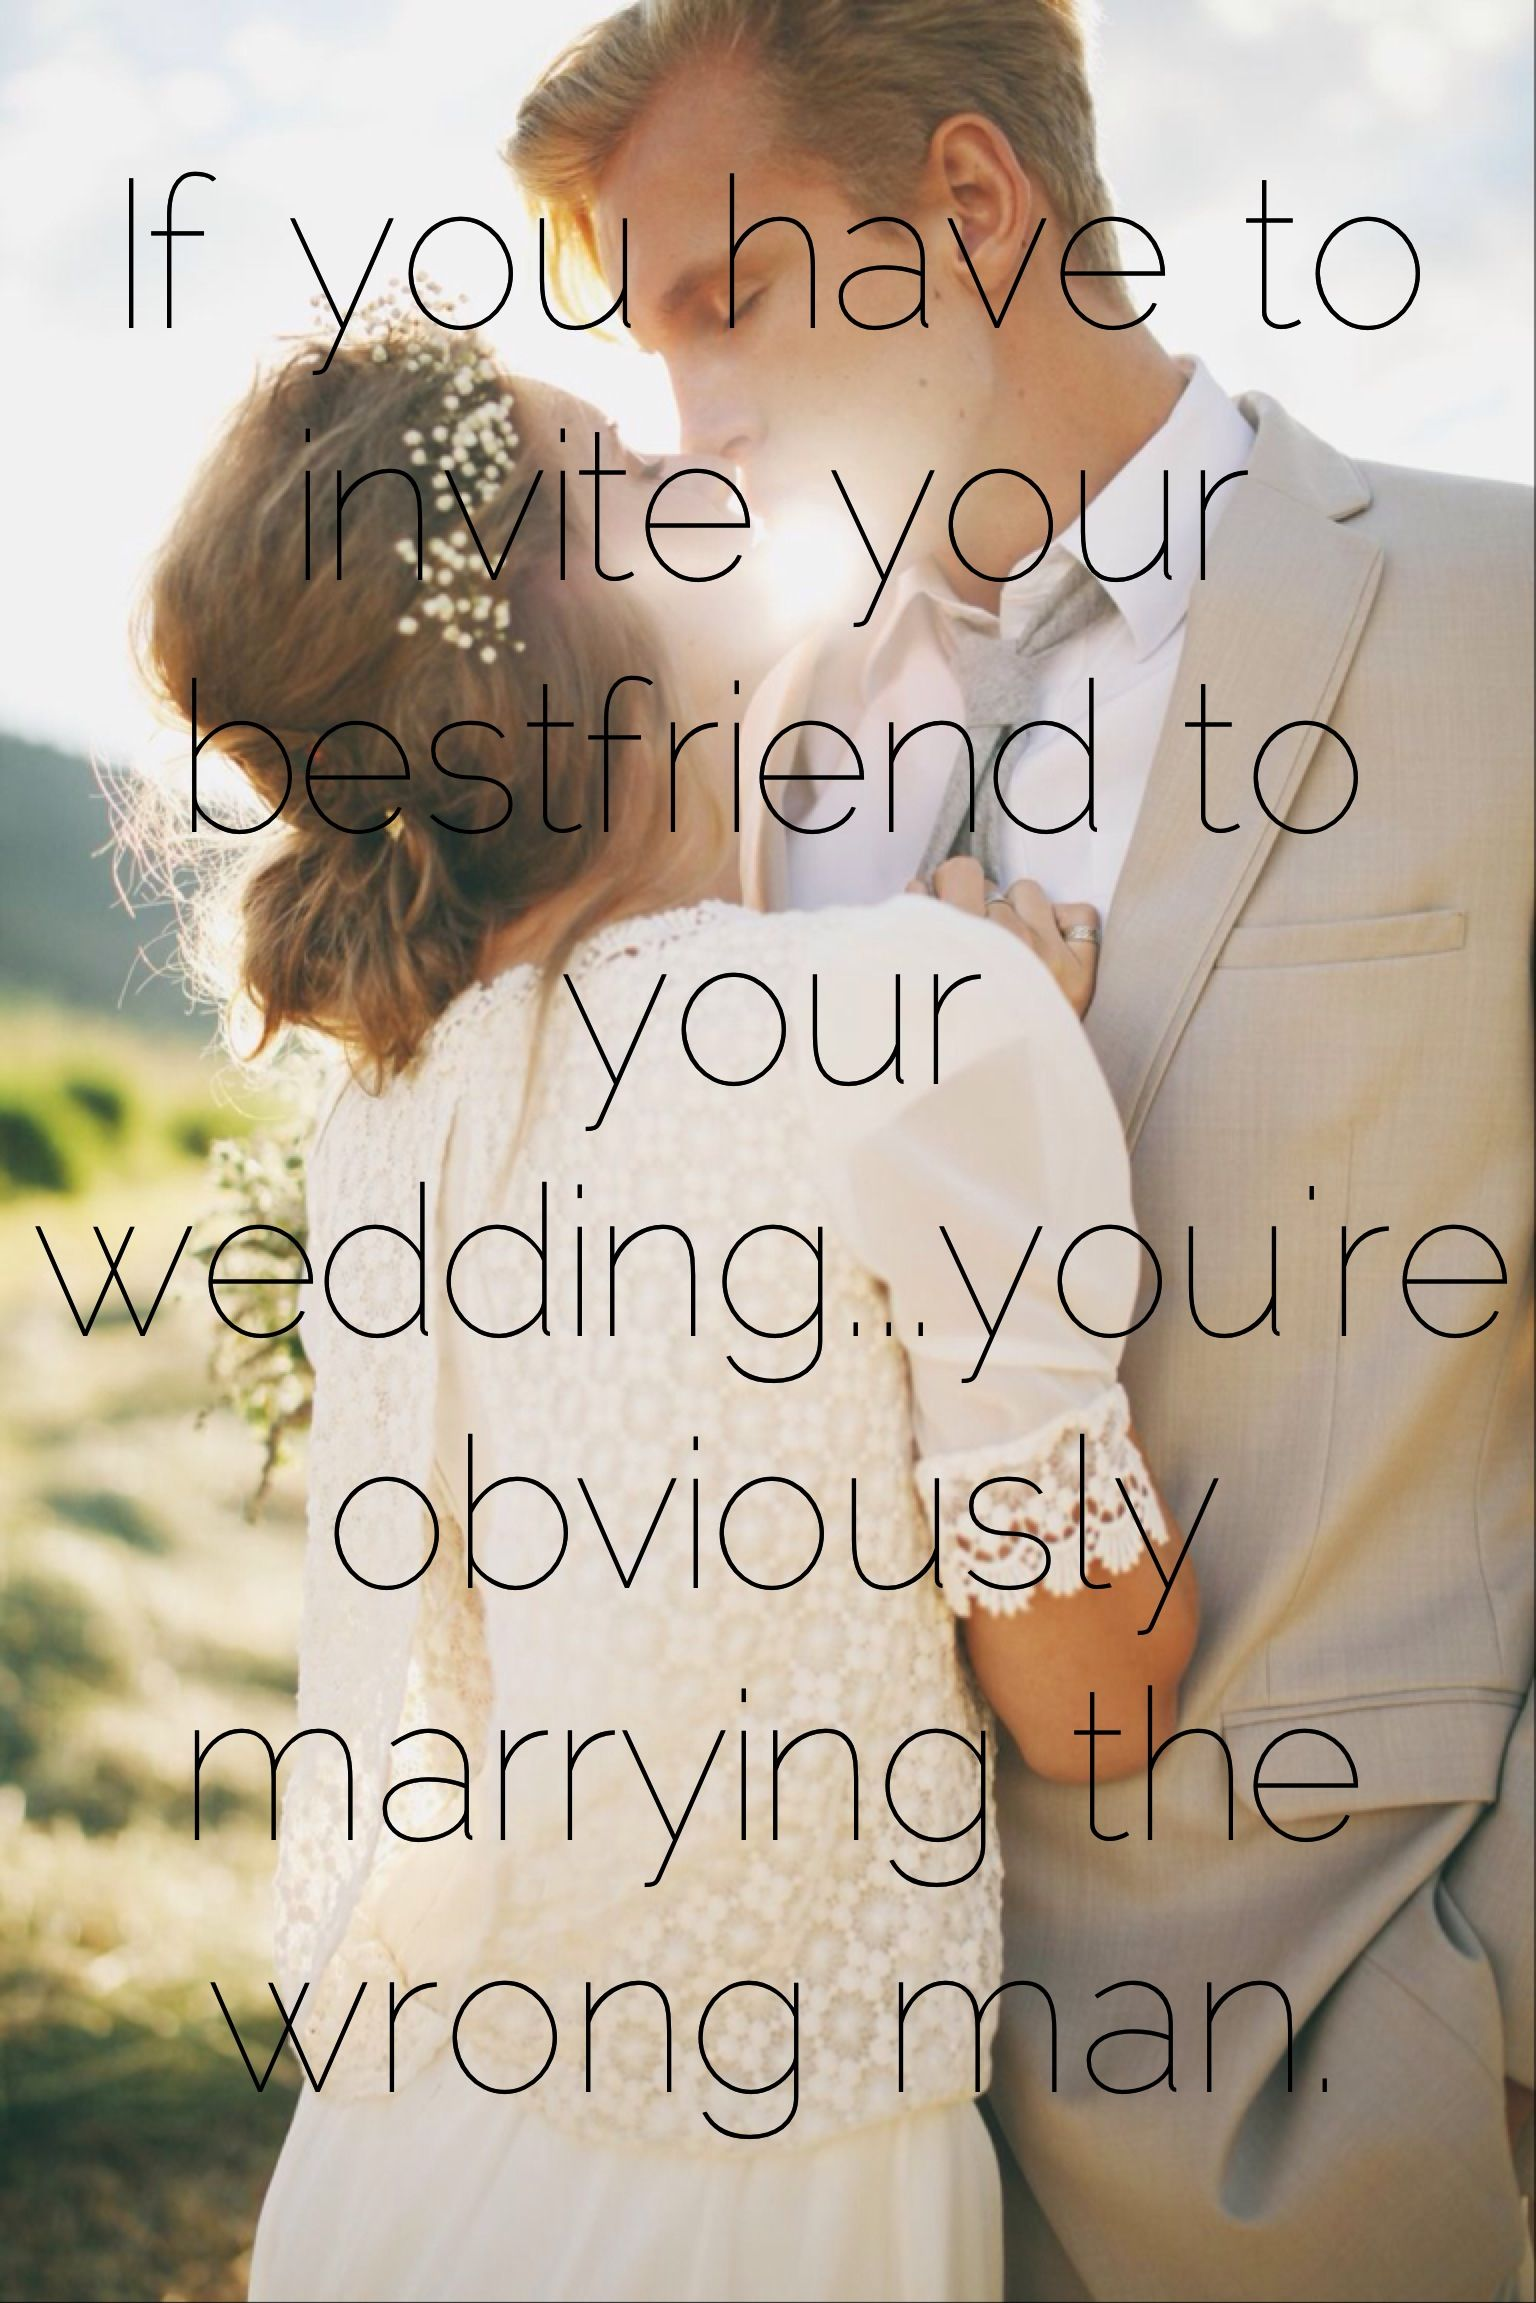 """If you have to invite your bestfriend to your wedding...you're obviously marrying the wrong man ..."